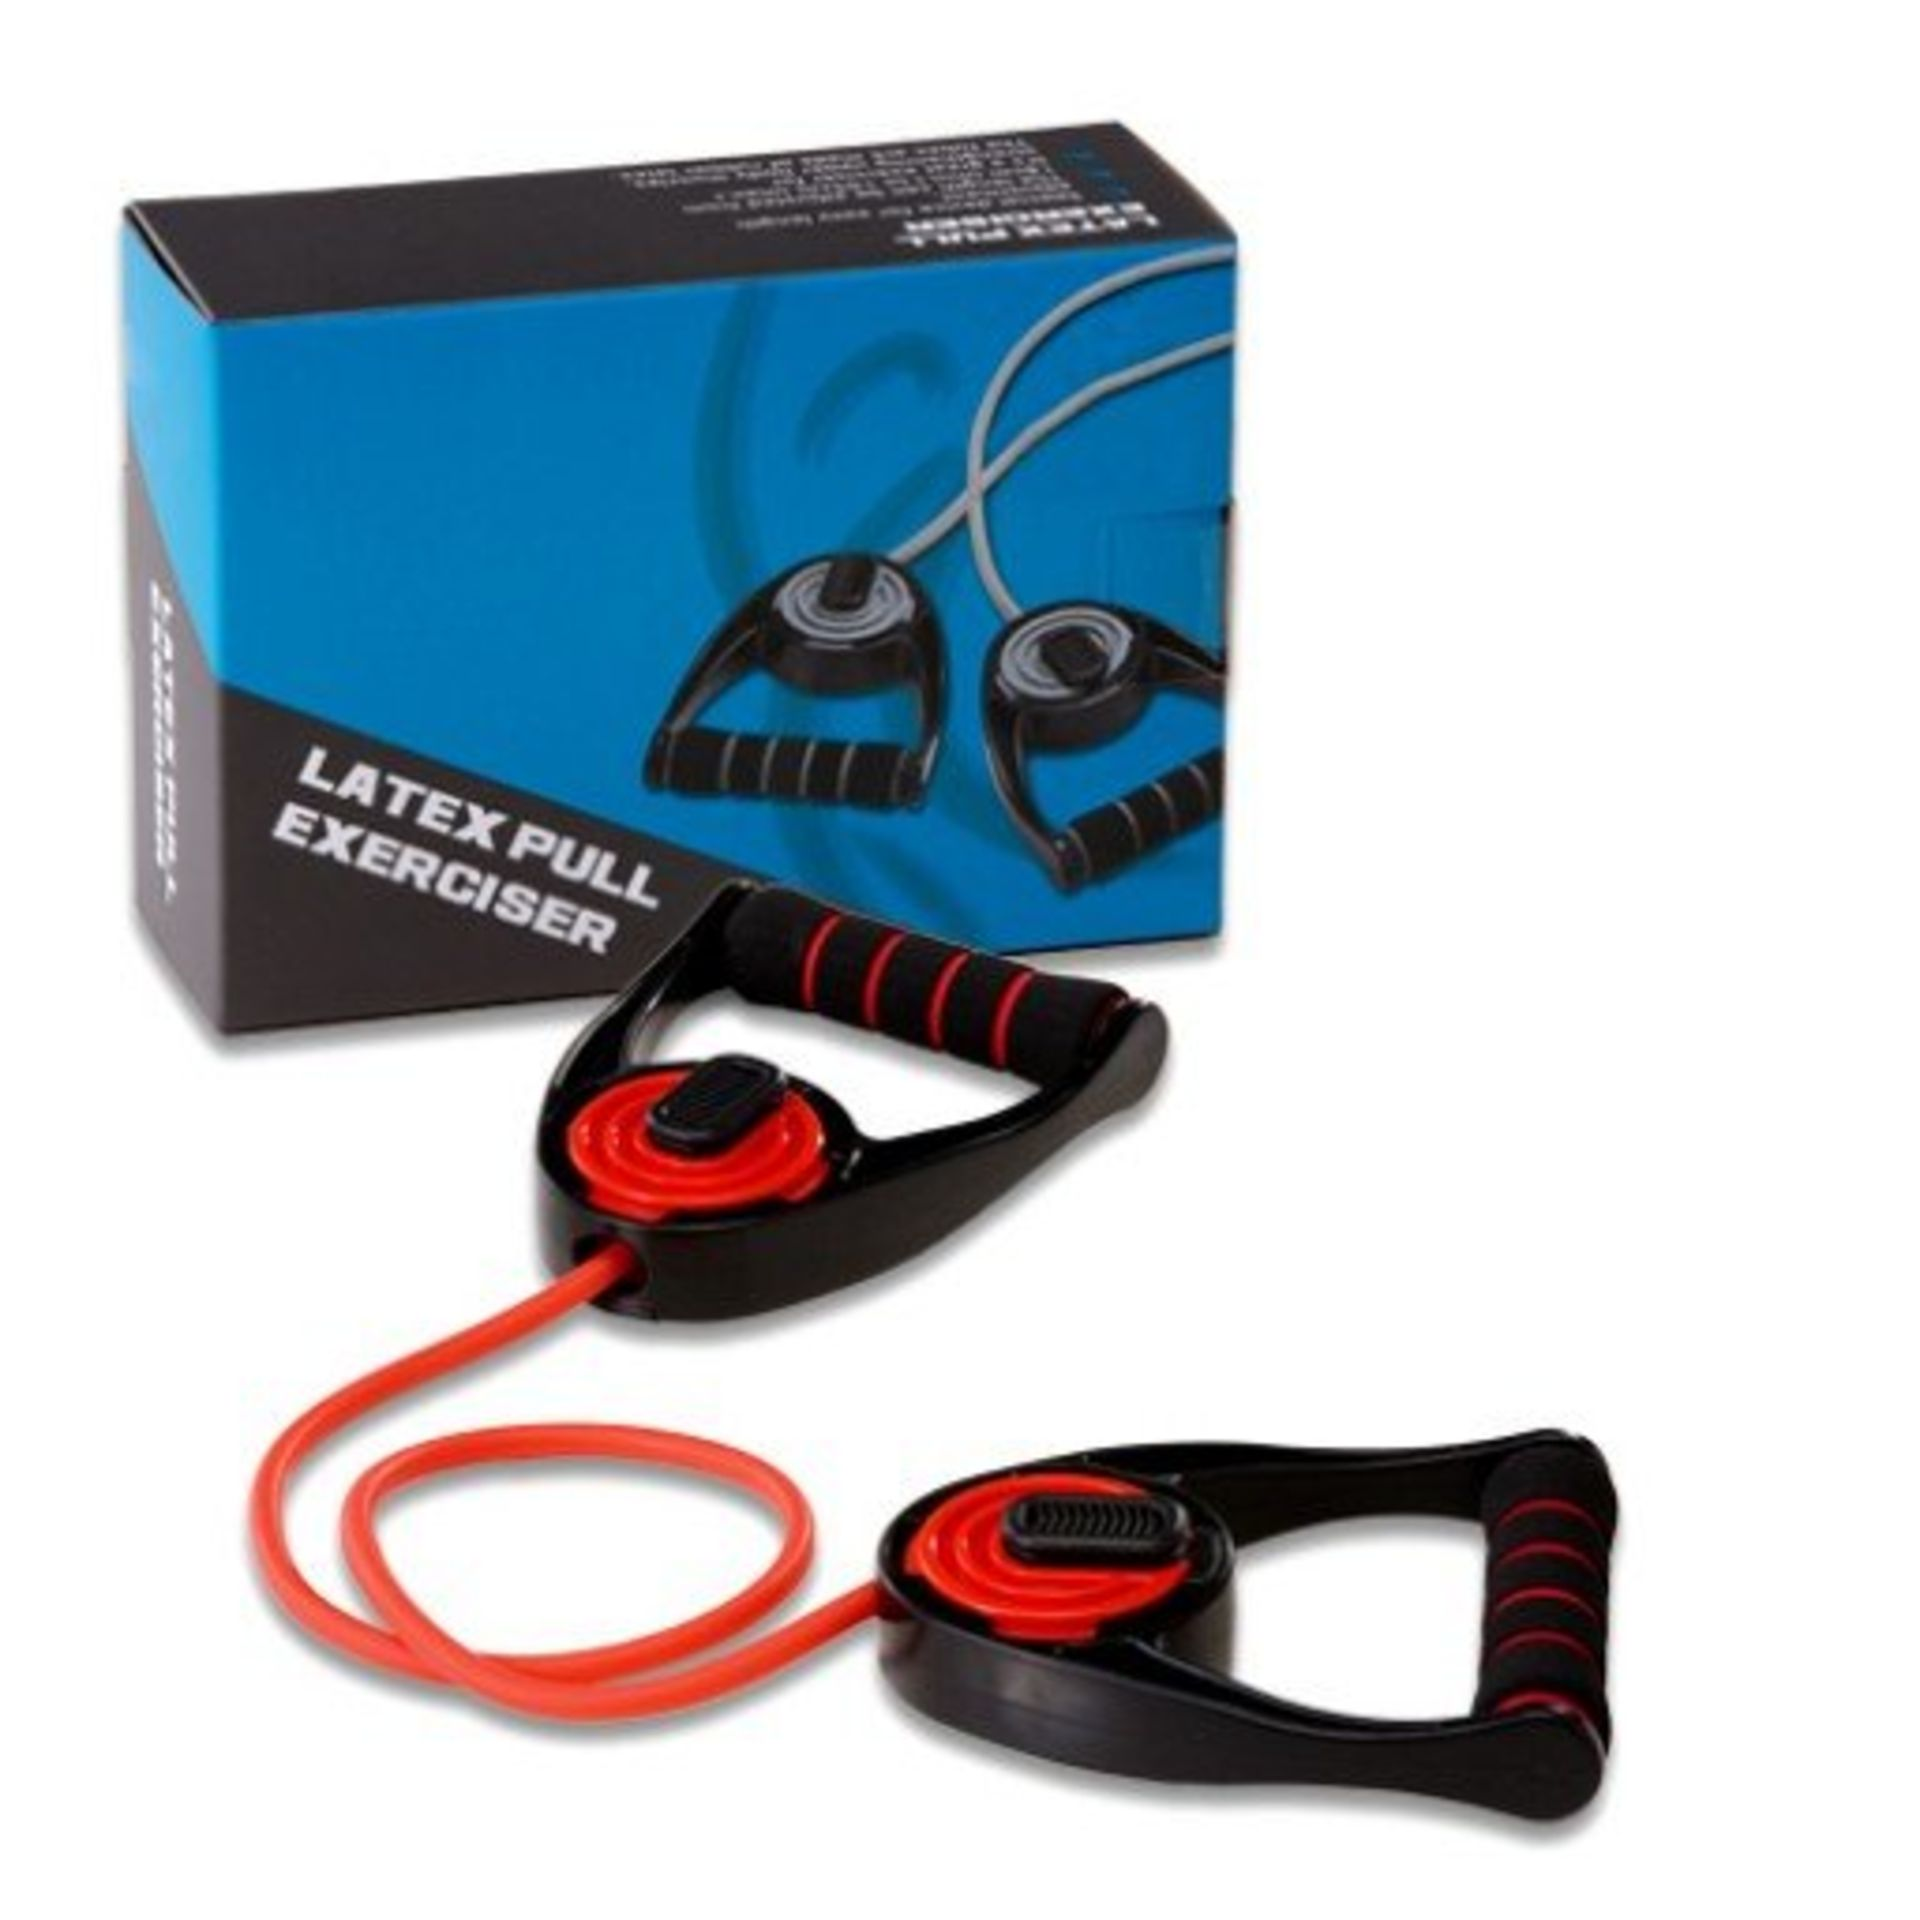 Brand New Clubfit - Latex Pull Exerciser